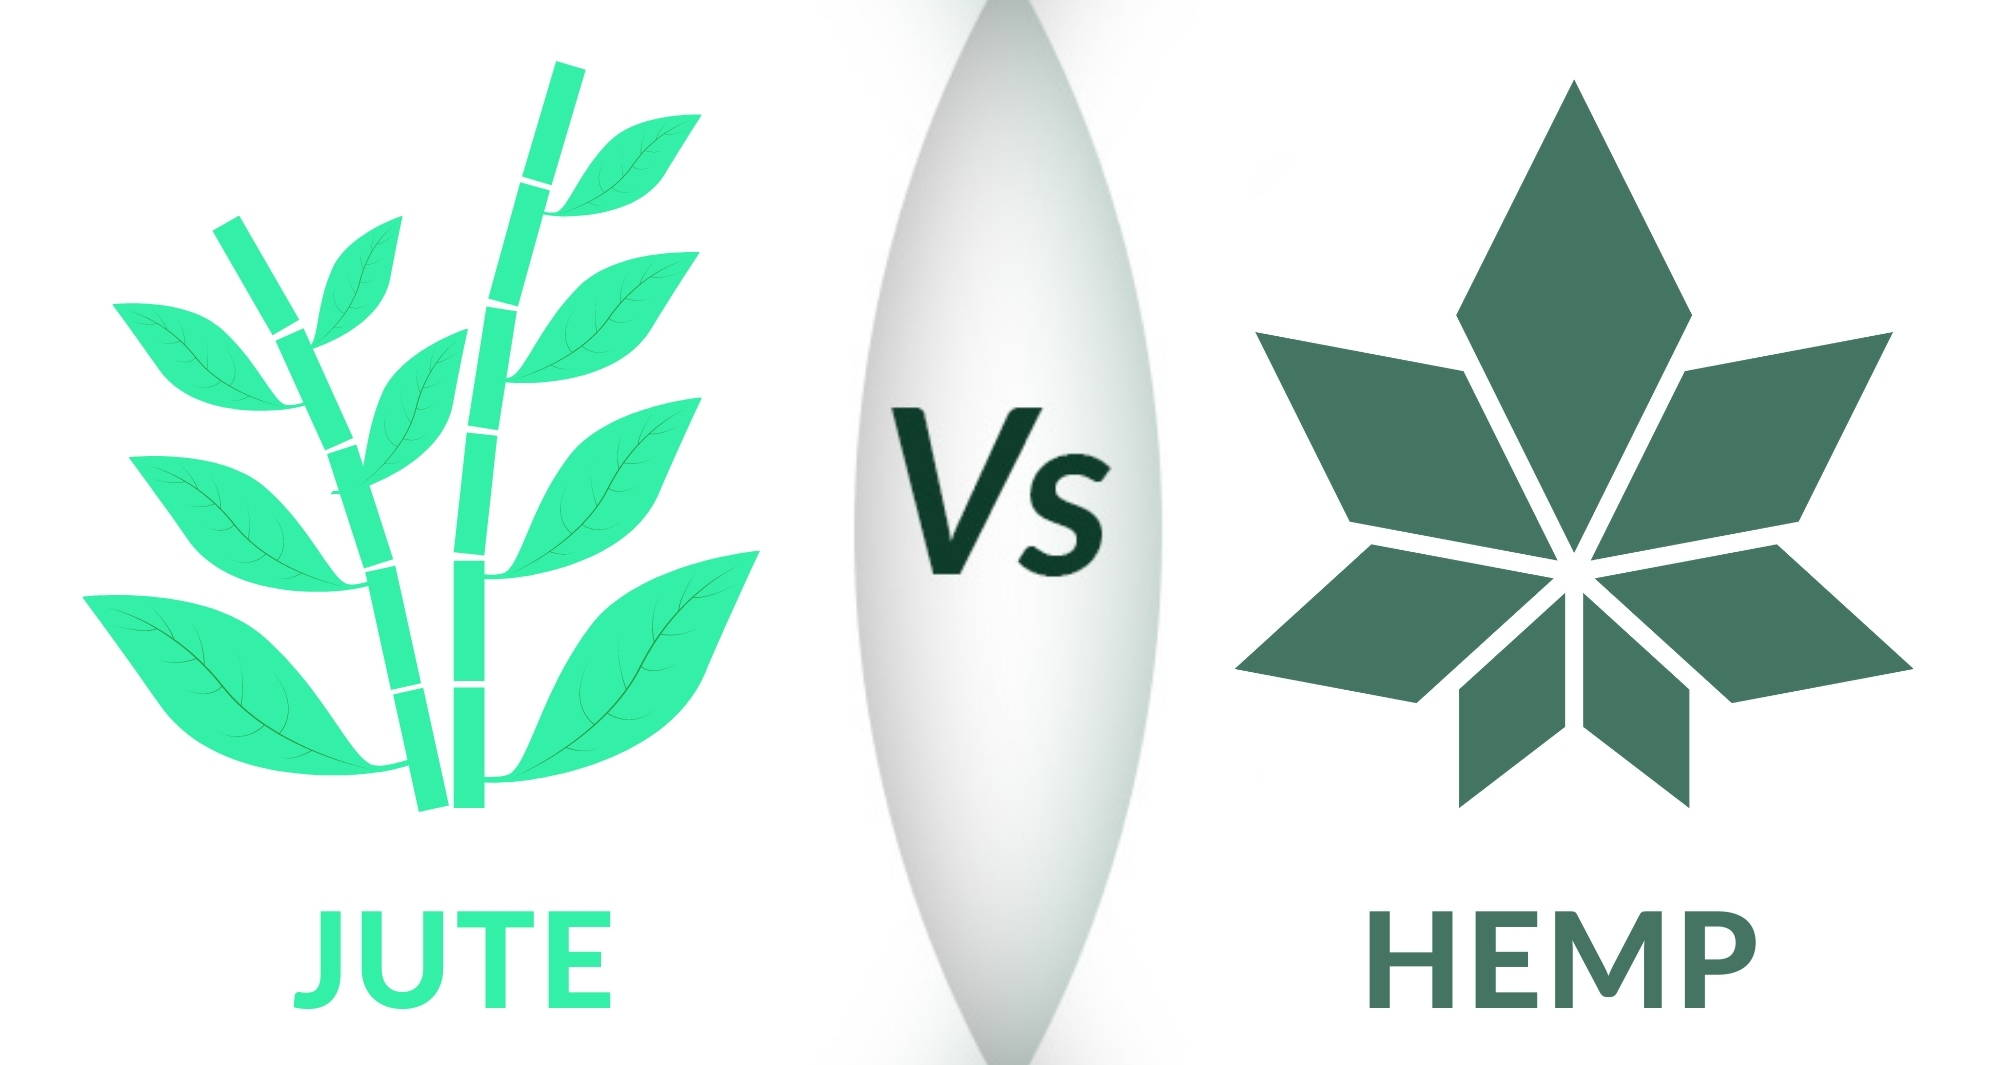 Jute vs hemp, what makes these natural fibers different from one another?